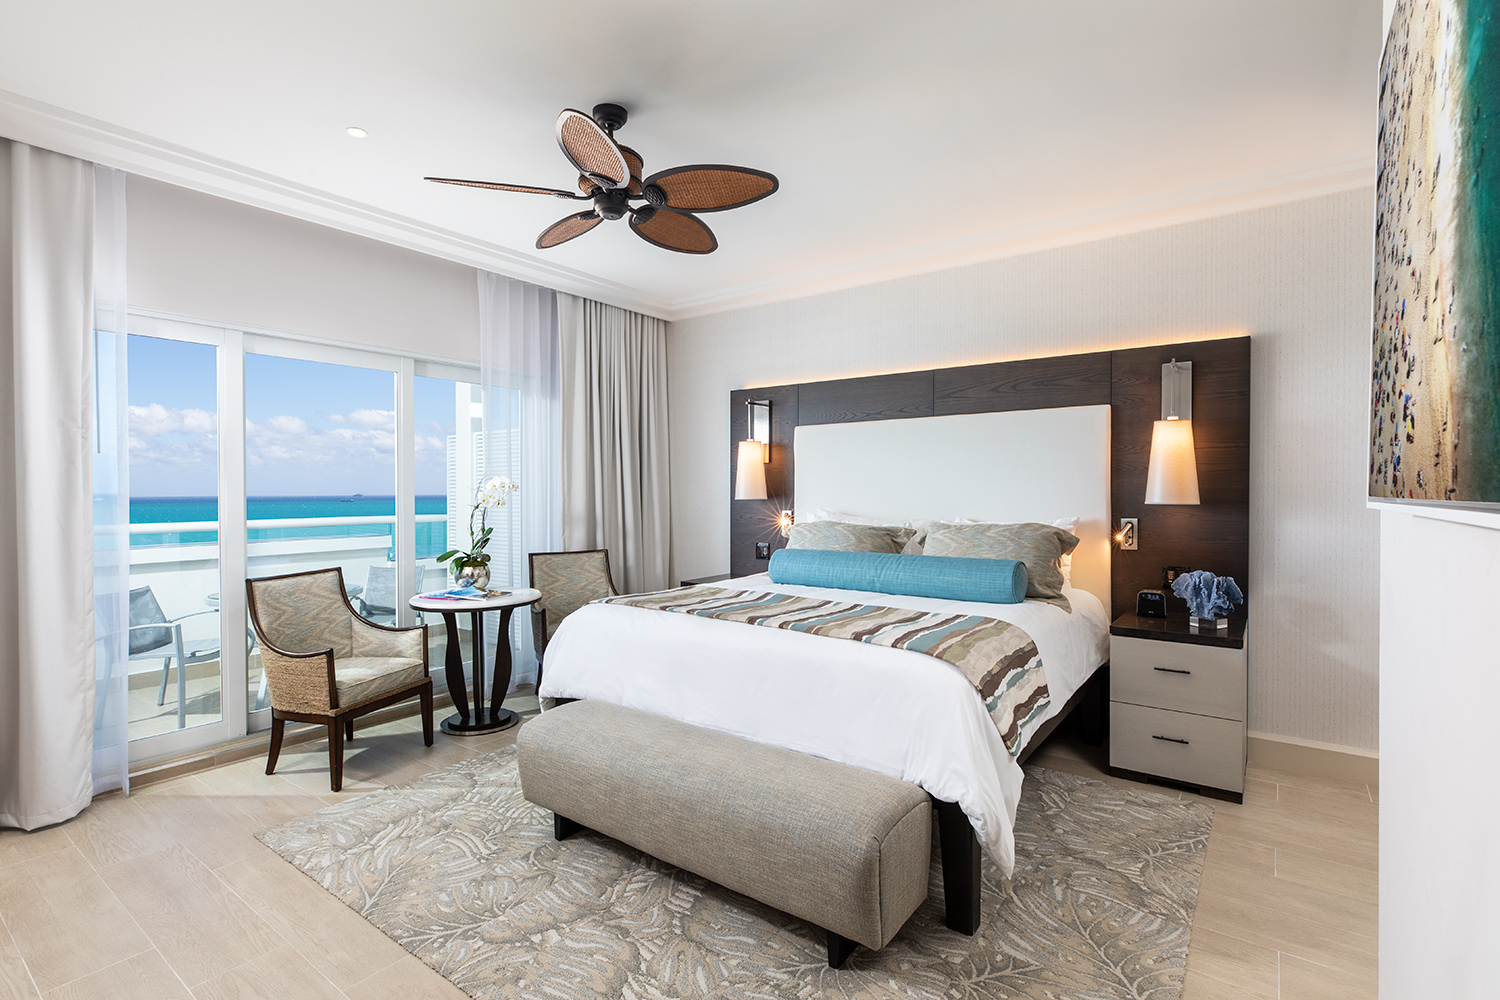 The-Palms-Hotel-March-2019-room-1204-02